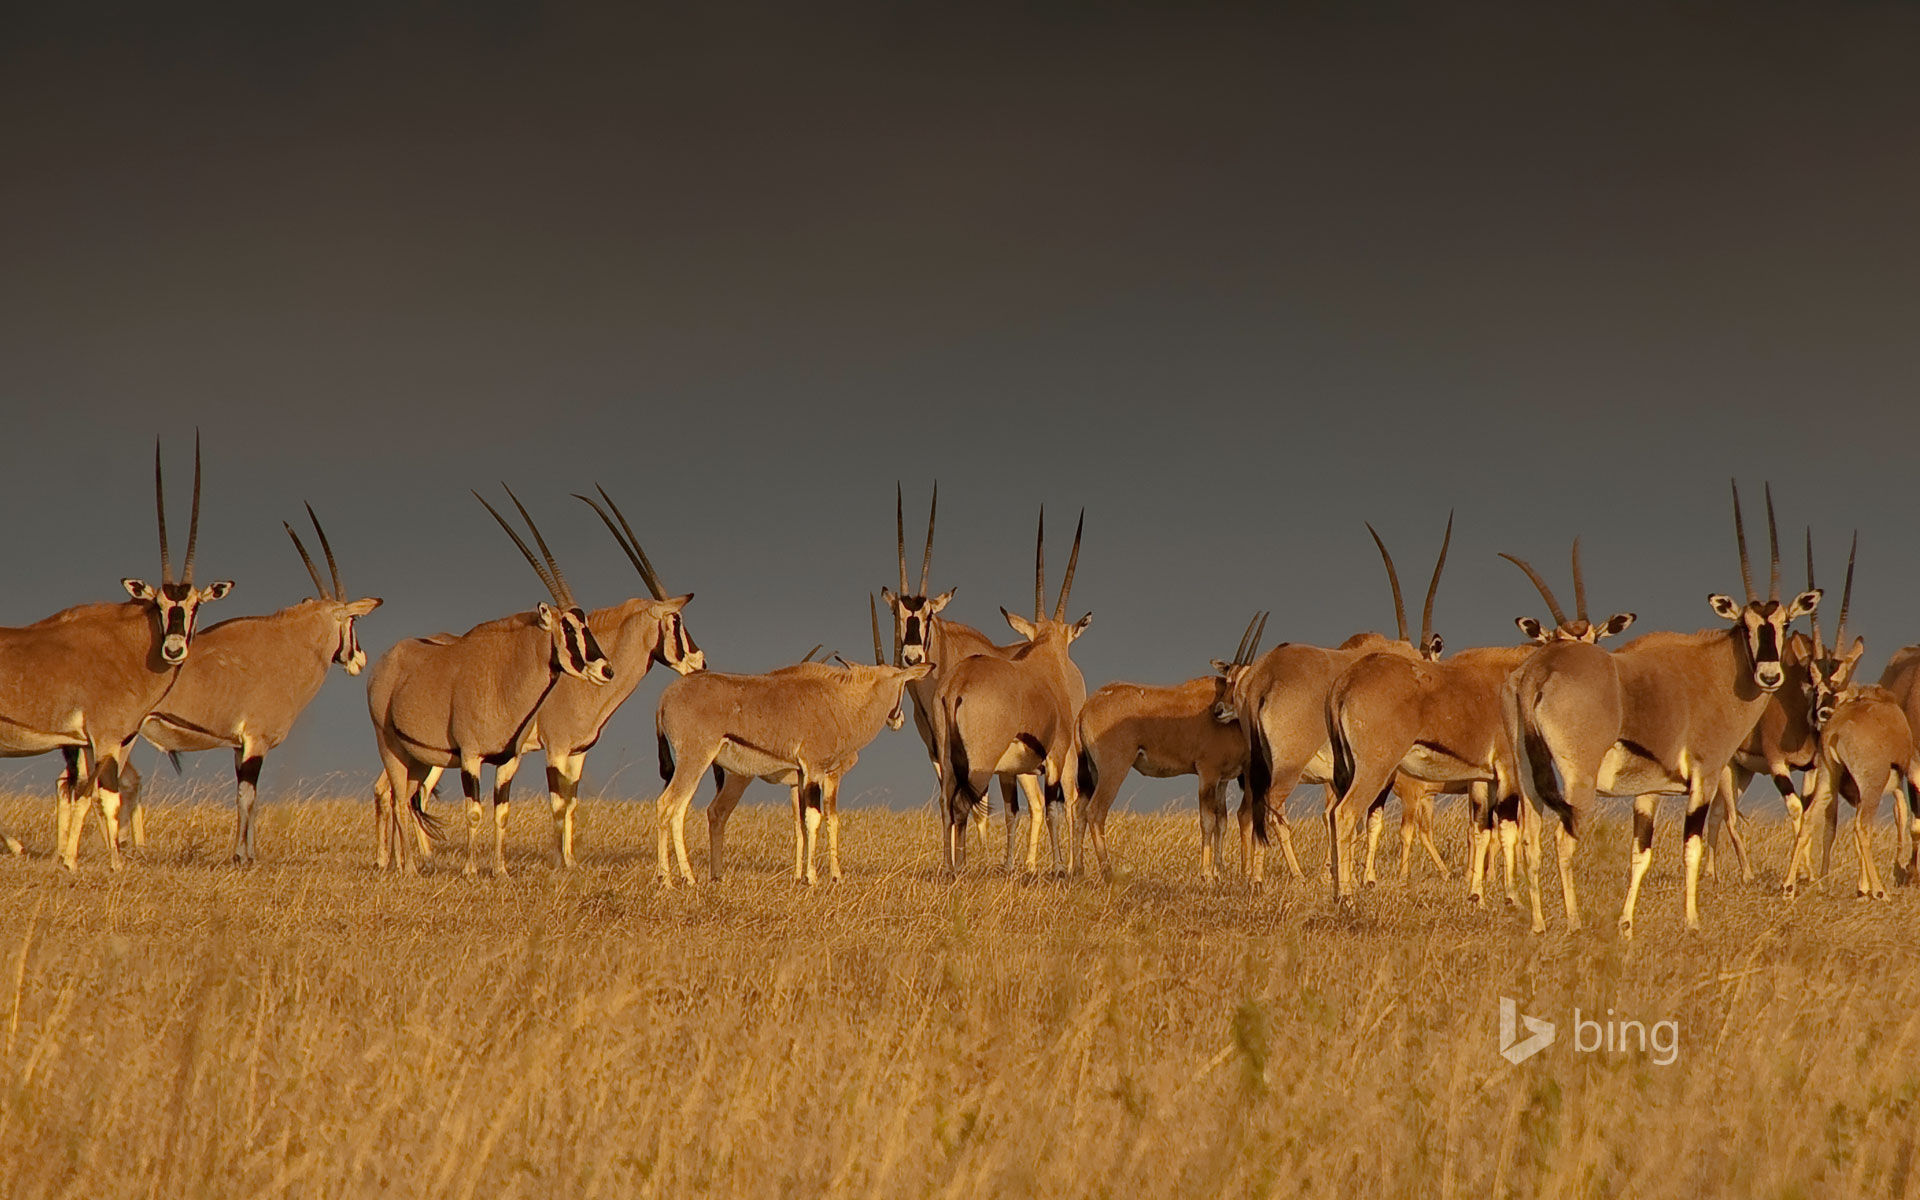 East African oryx herd, Solio Game Reserve in Kenya's Great Rift Valley